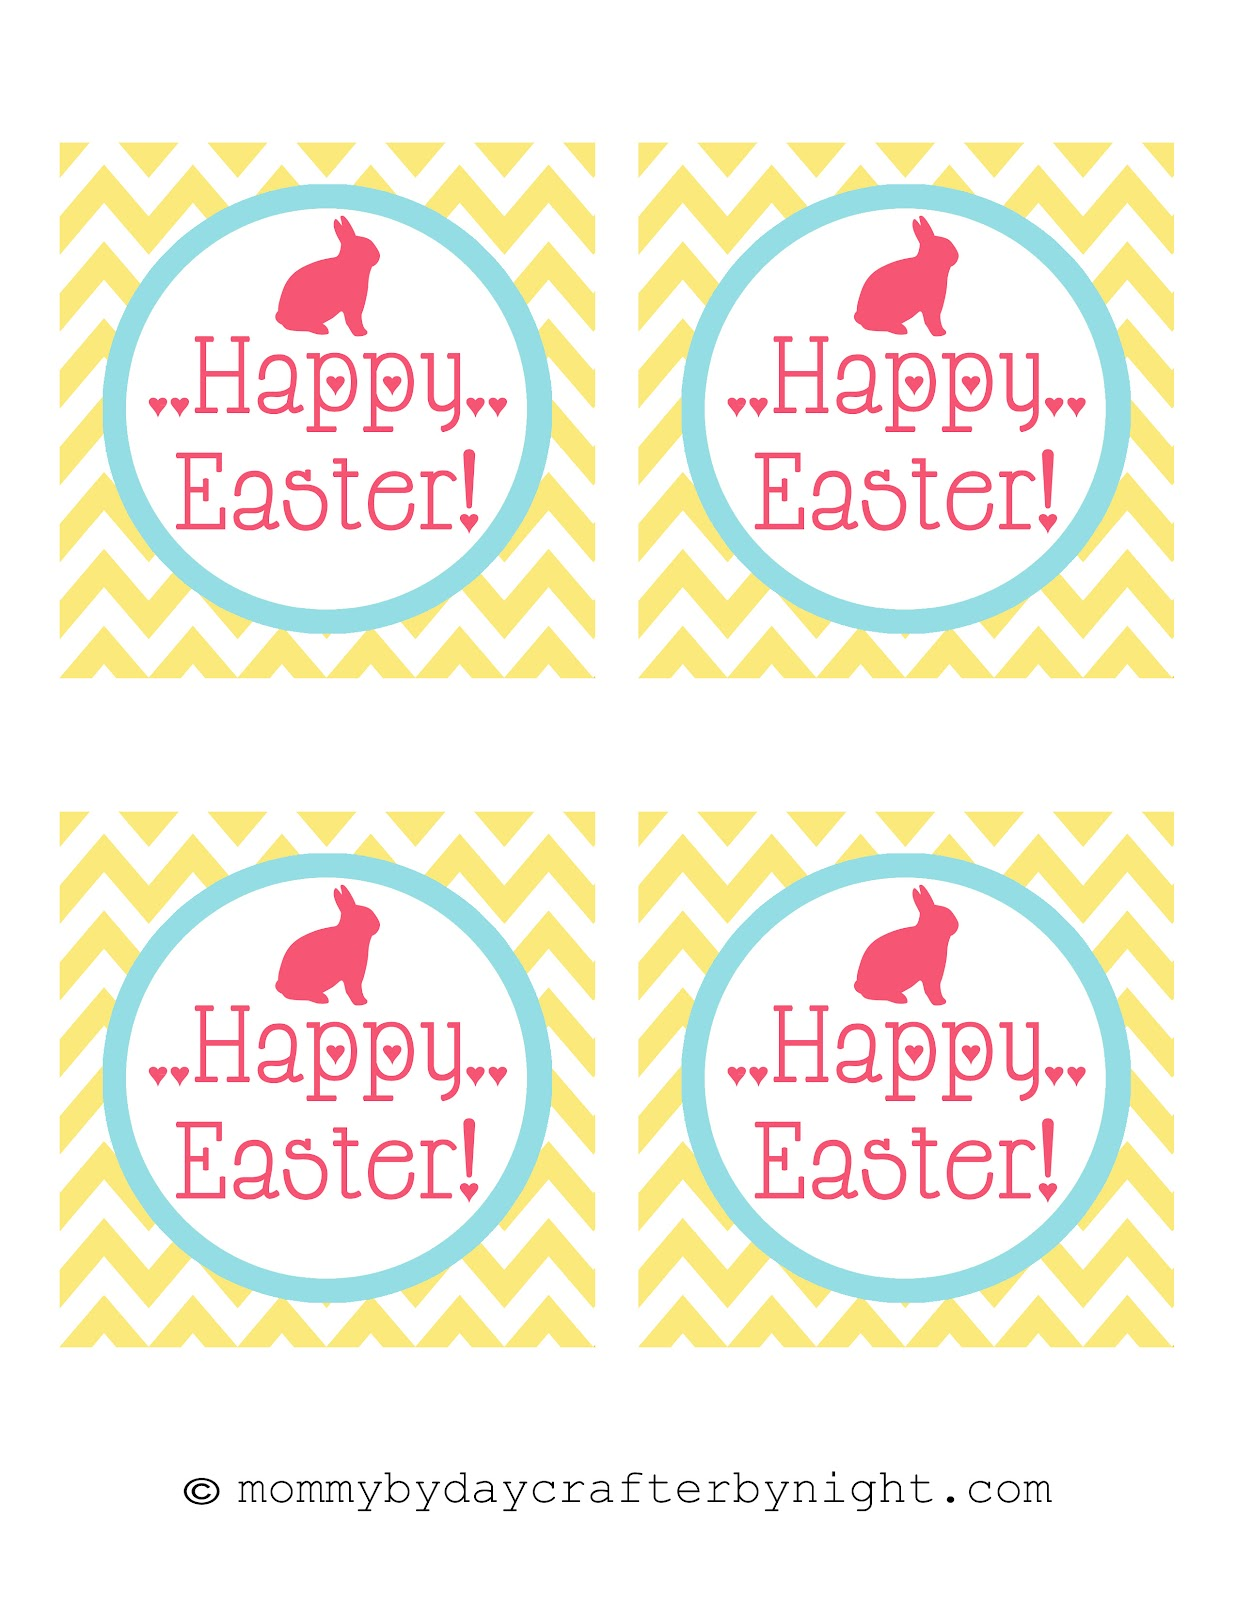 Mommy by day crafter by night free printable happy easter tags free printable happy easter tags negle Choice Image